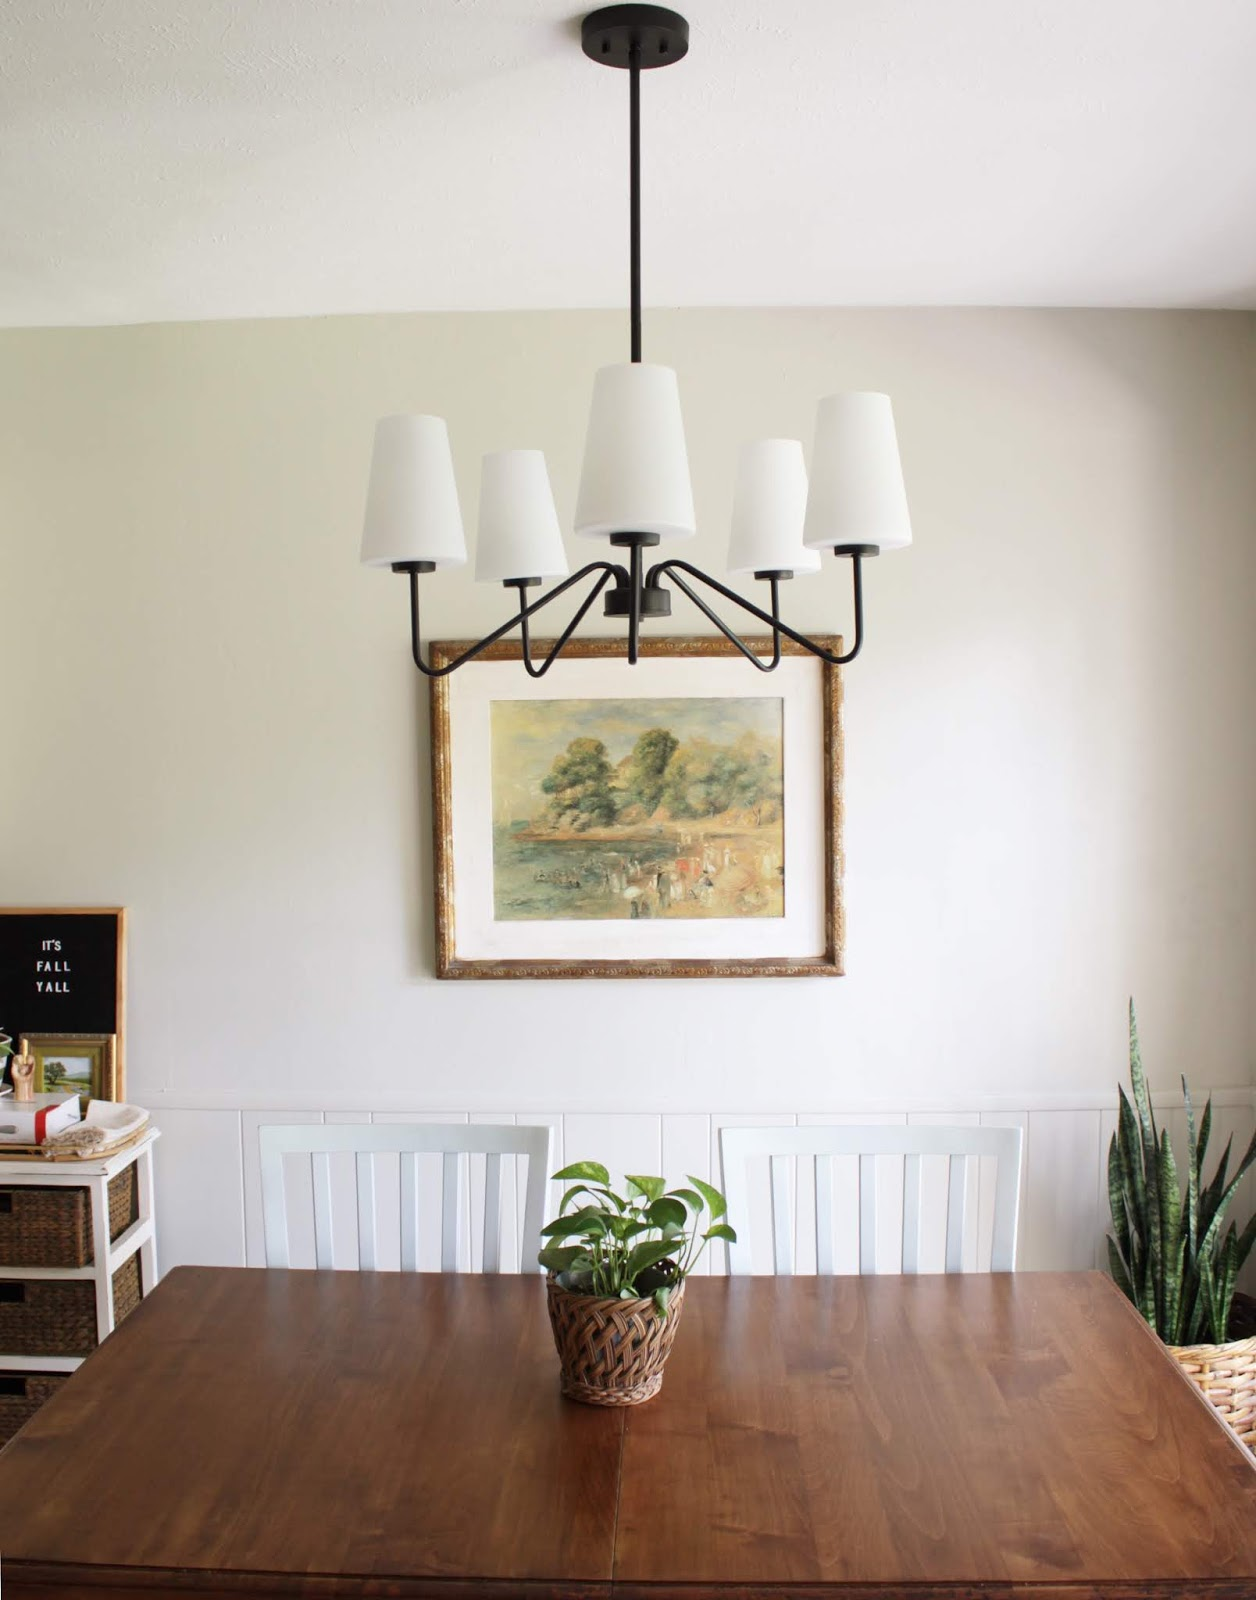 How to paint a light fixture | House Homemade